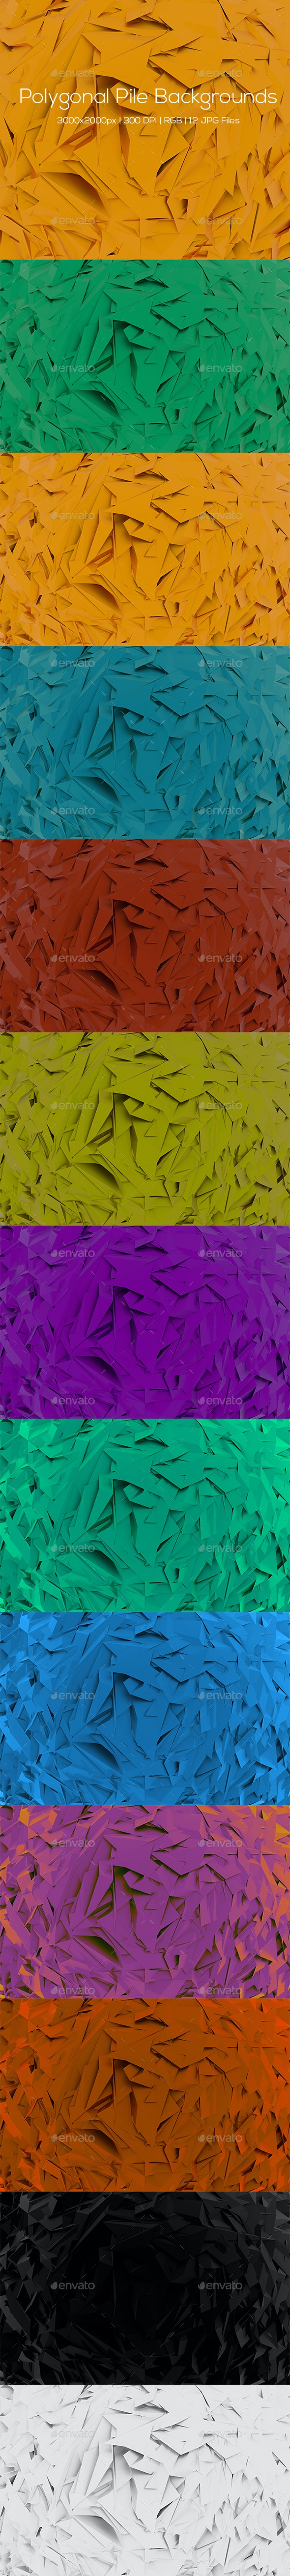 Polygonal Pile Backgrounds - Abstract Backgrounds